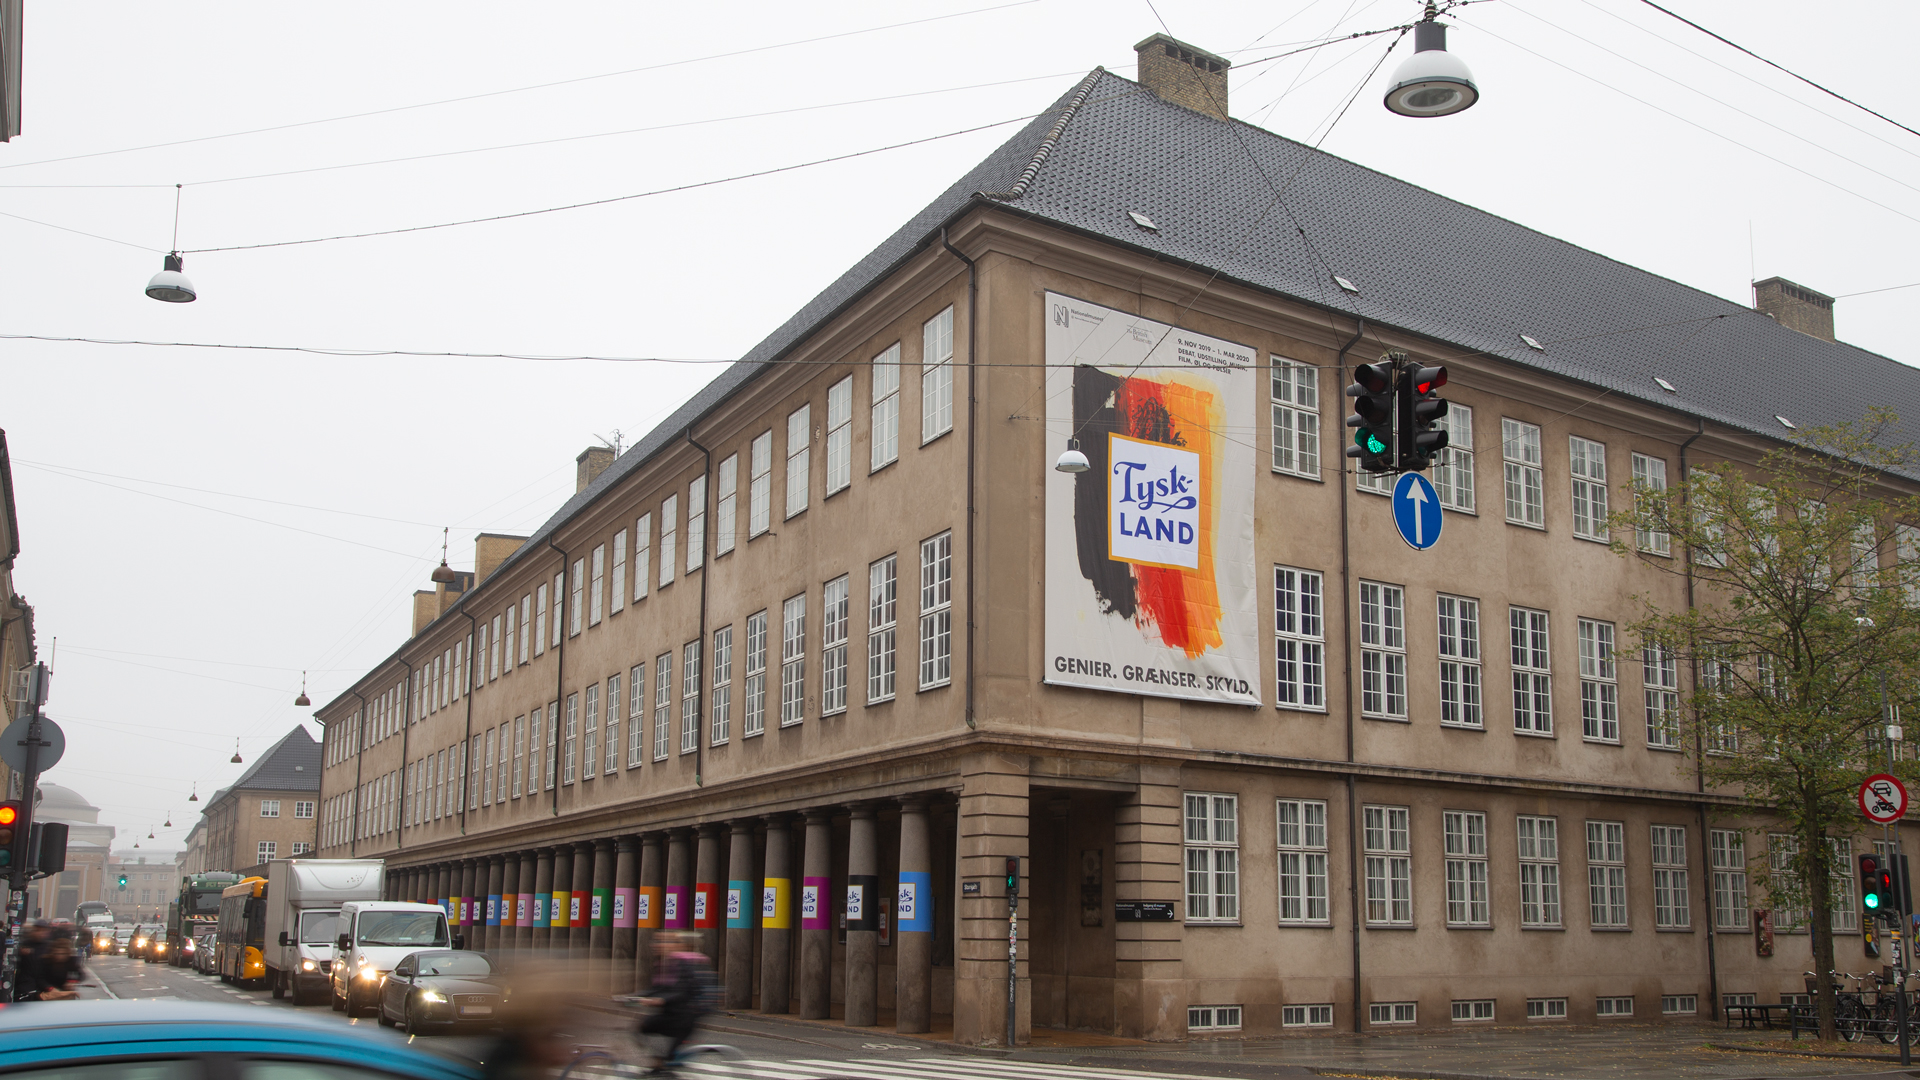 Building with huge  exhibition sign saying 'TYSKLAND'